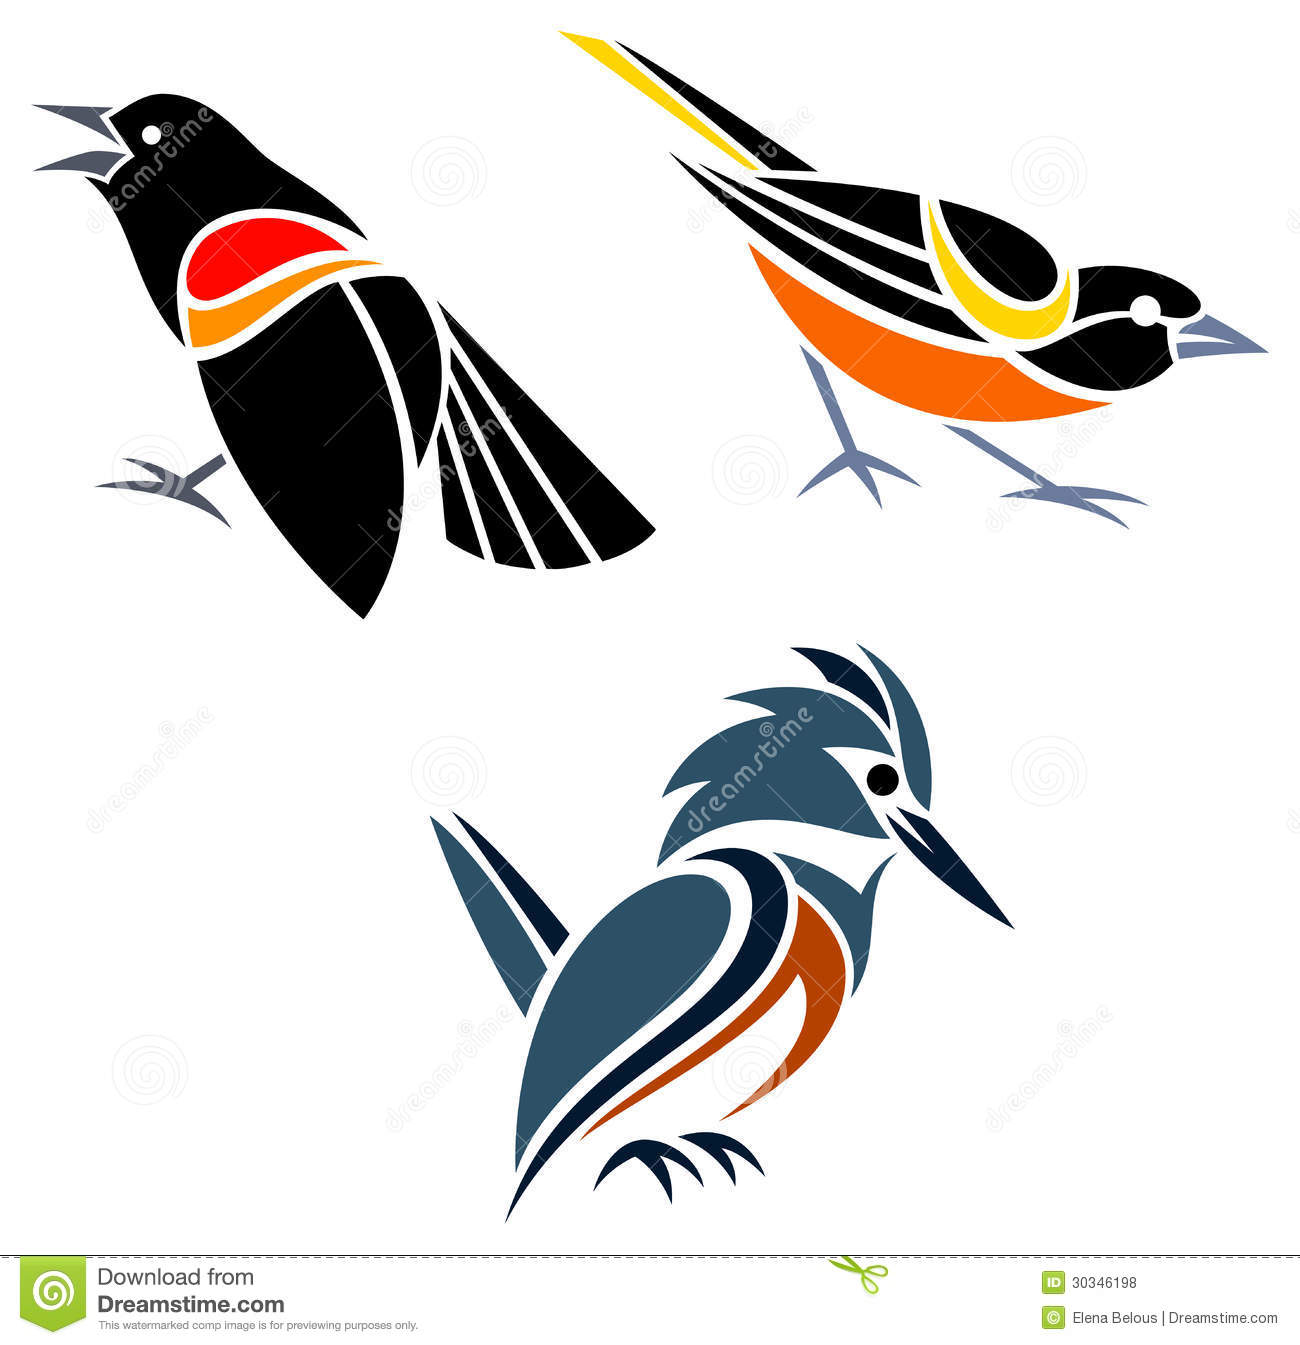 stylized birds royalty free stock photos image 30346198 blackbird clipart Blackbird Illustration